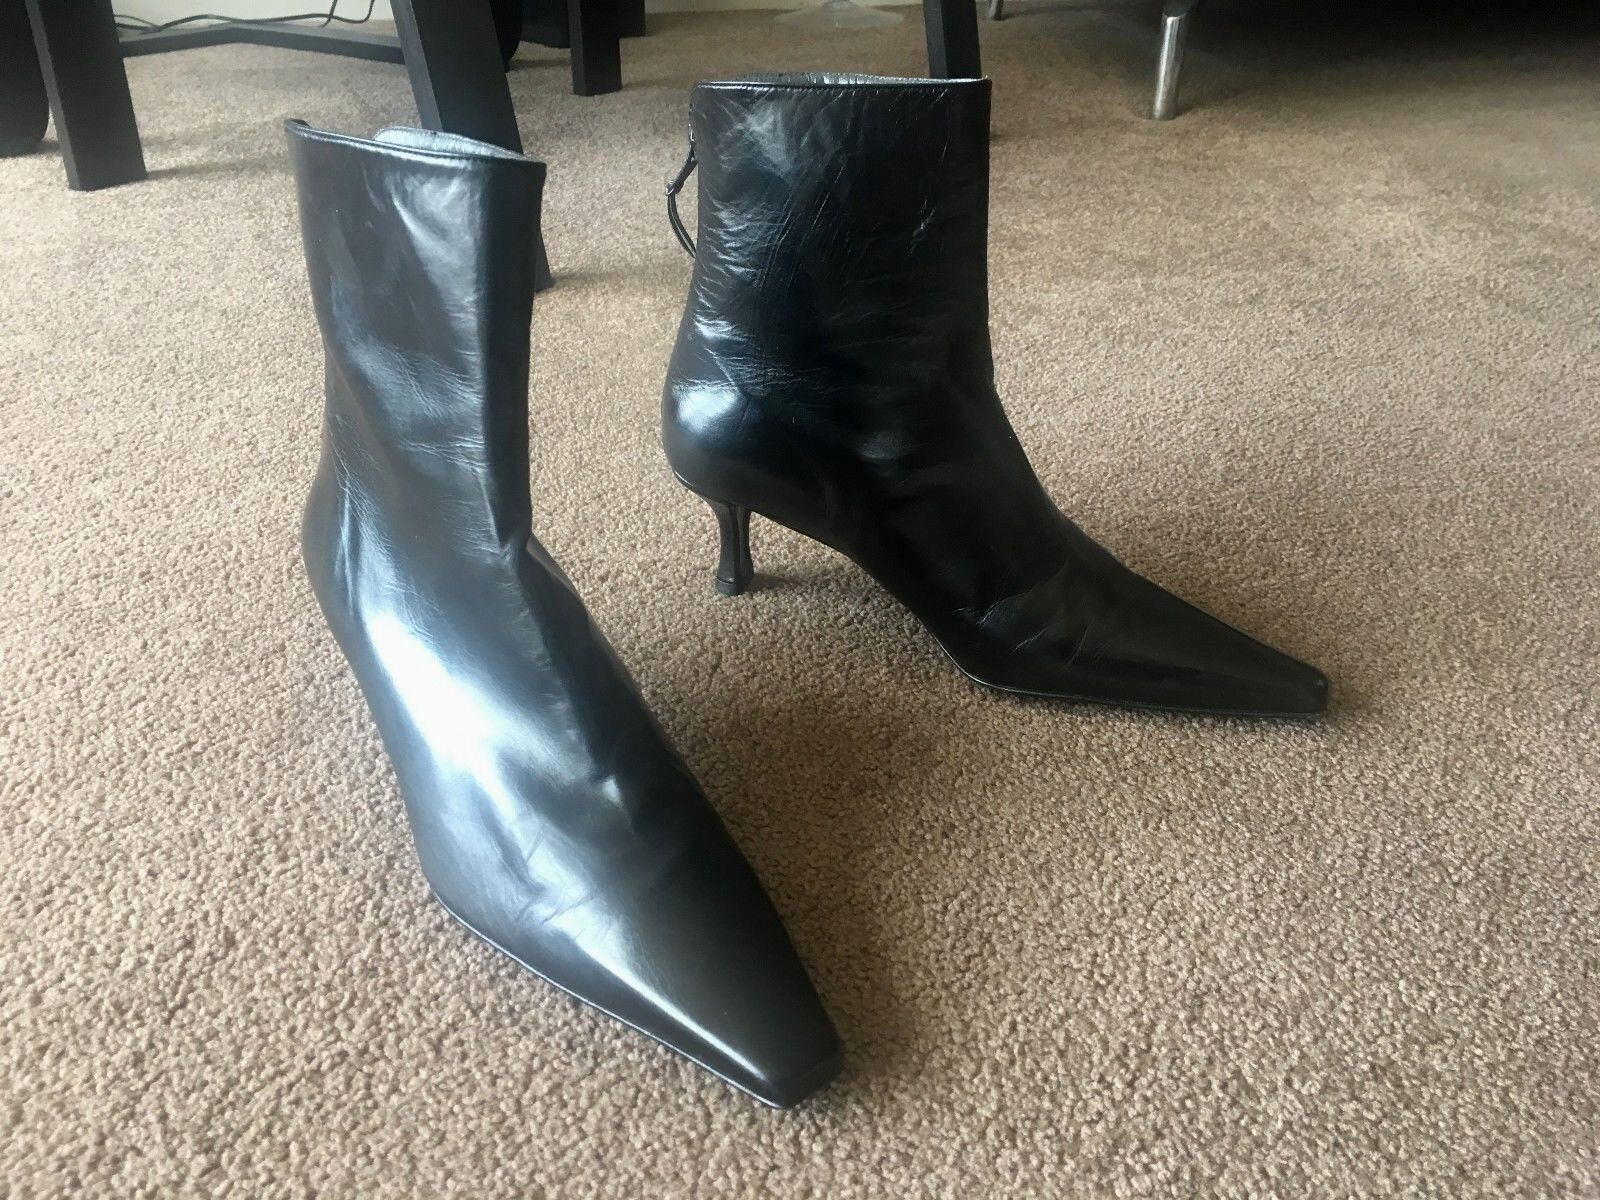 AUTH STUART WEITZMAN BLACK LEATHER ANKLE BOOTS Sz 7 1/2 M